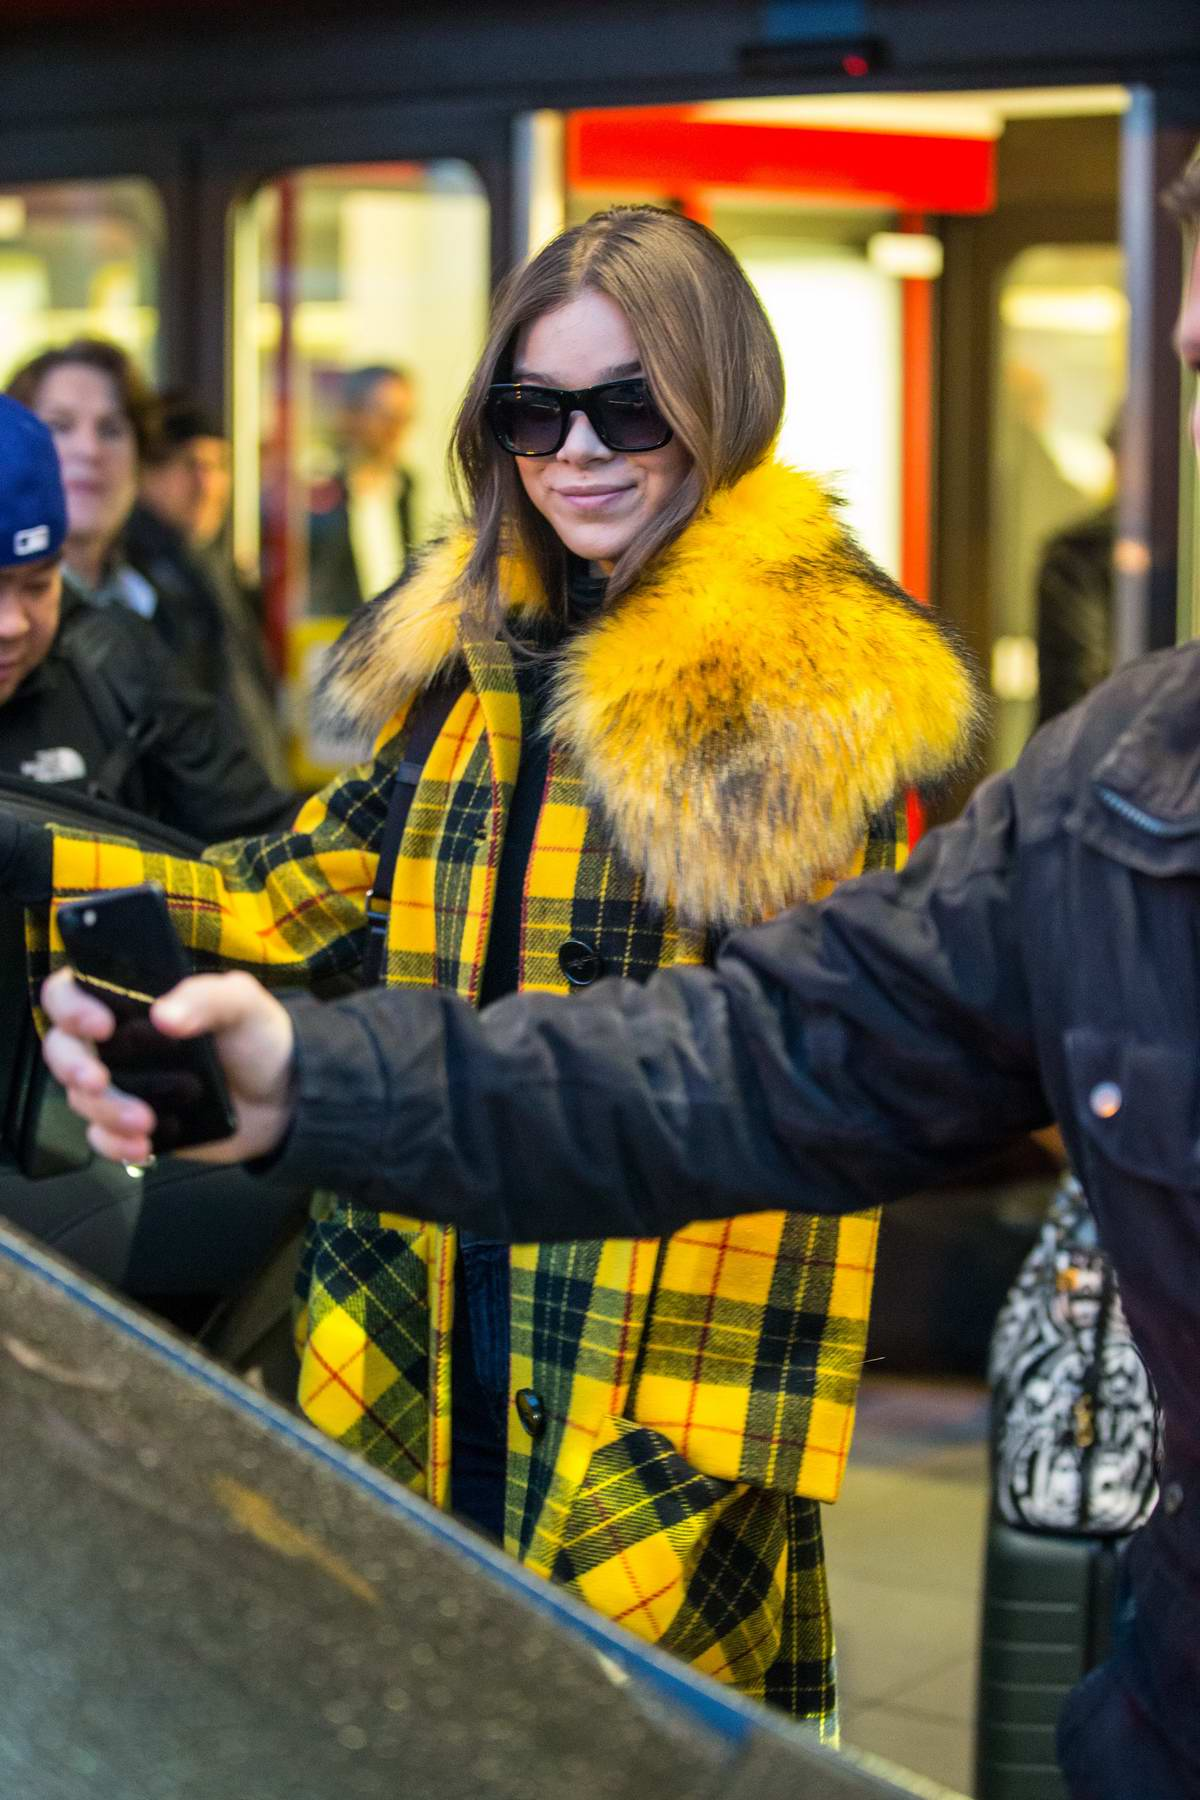 Hailee Steinfeld wears a fur-lined yellow and black plaid coat as she arrives at Berlin Tegel airport to promote Bumblebee in Germany